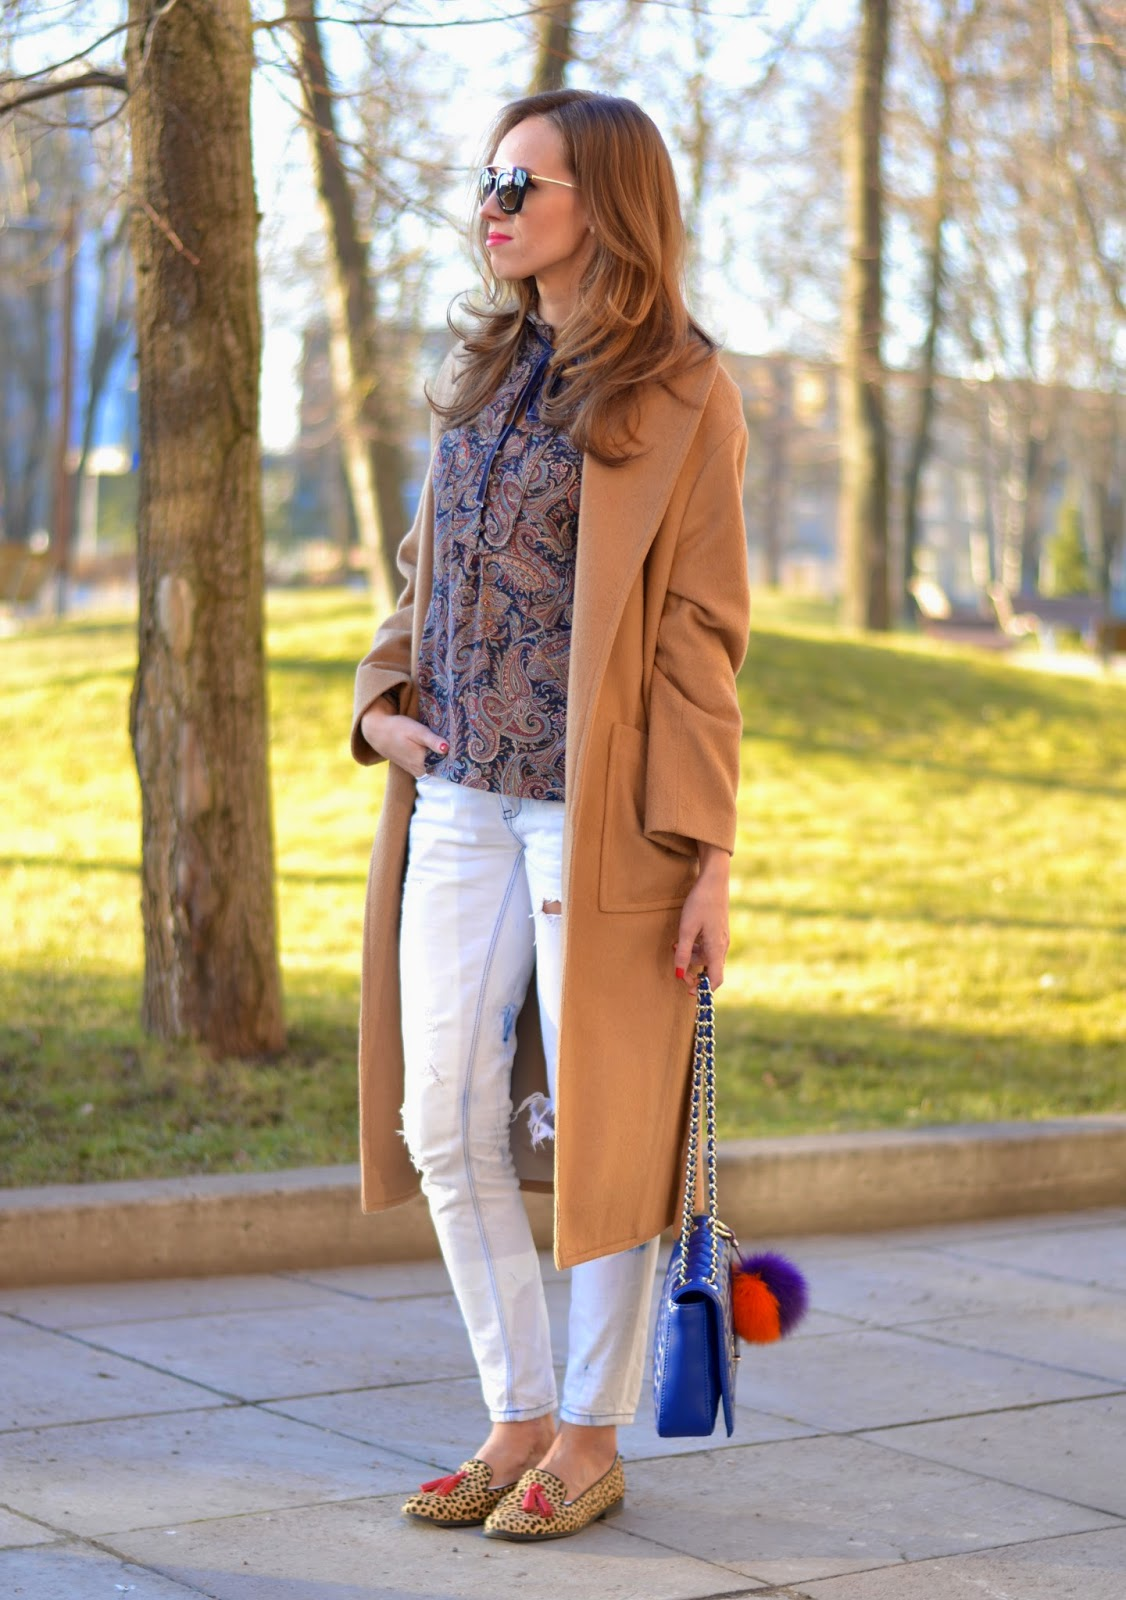 kristjaana mere sring casual camel outfit